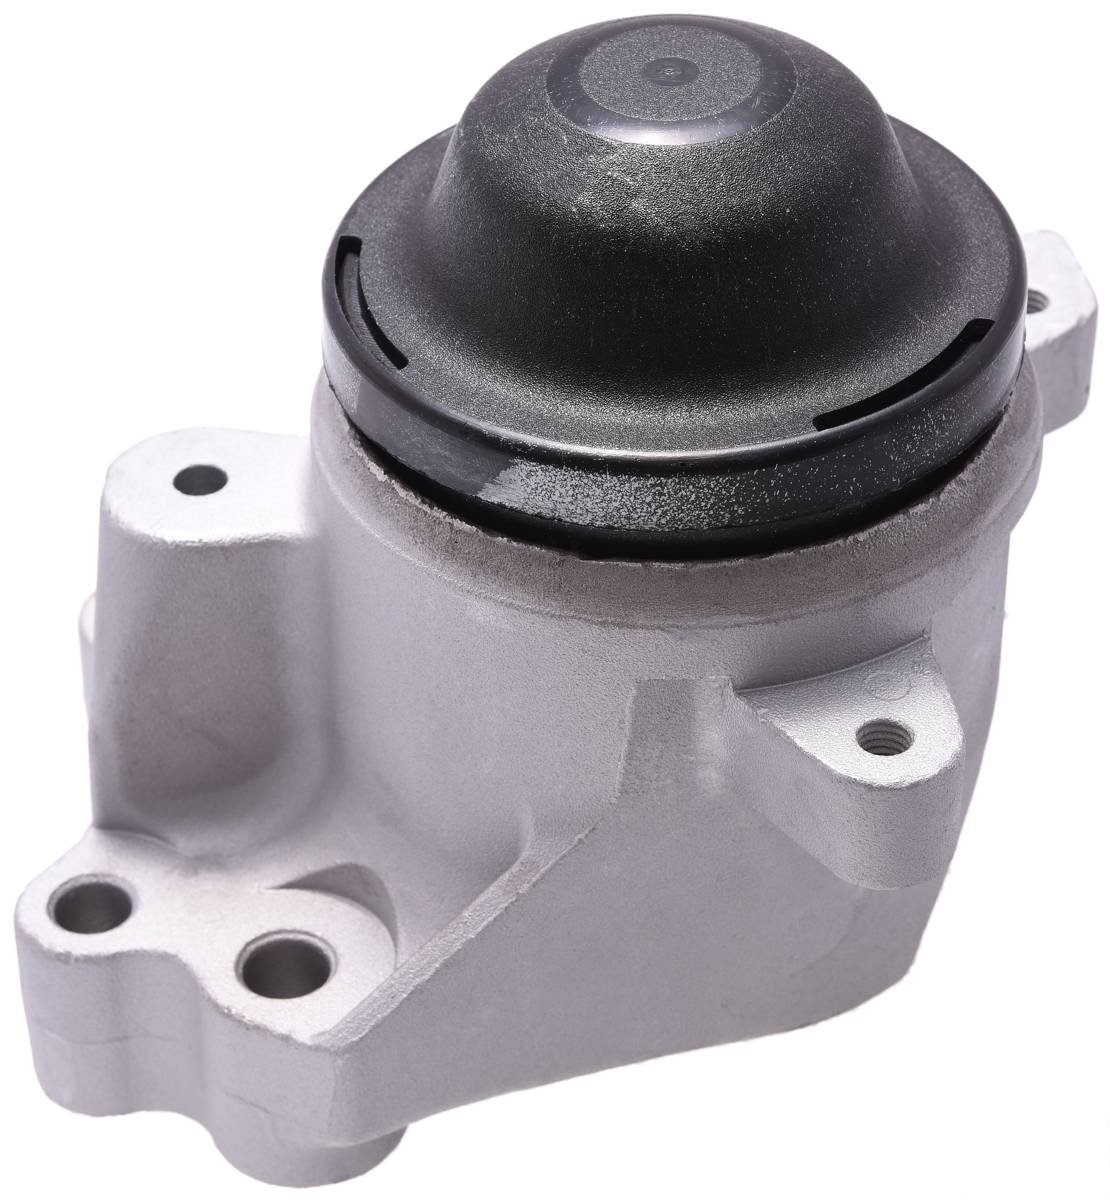 RIGHT ENGINE MOUNT - Febest # MZM-CX9RH - 1 Year Warranty by Febest